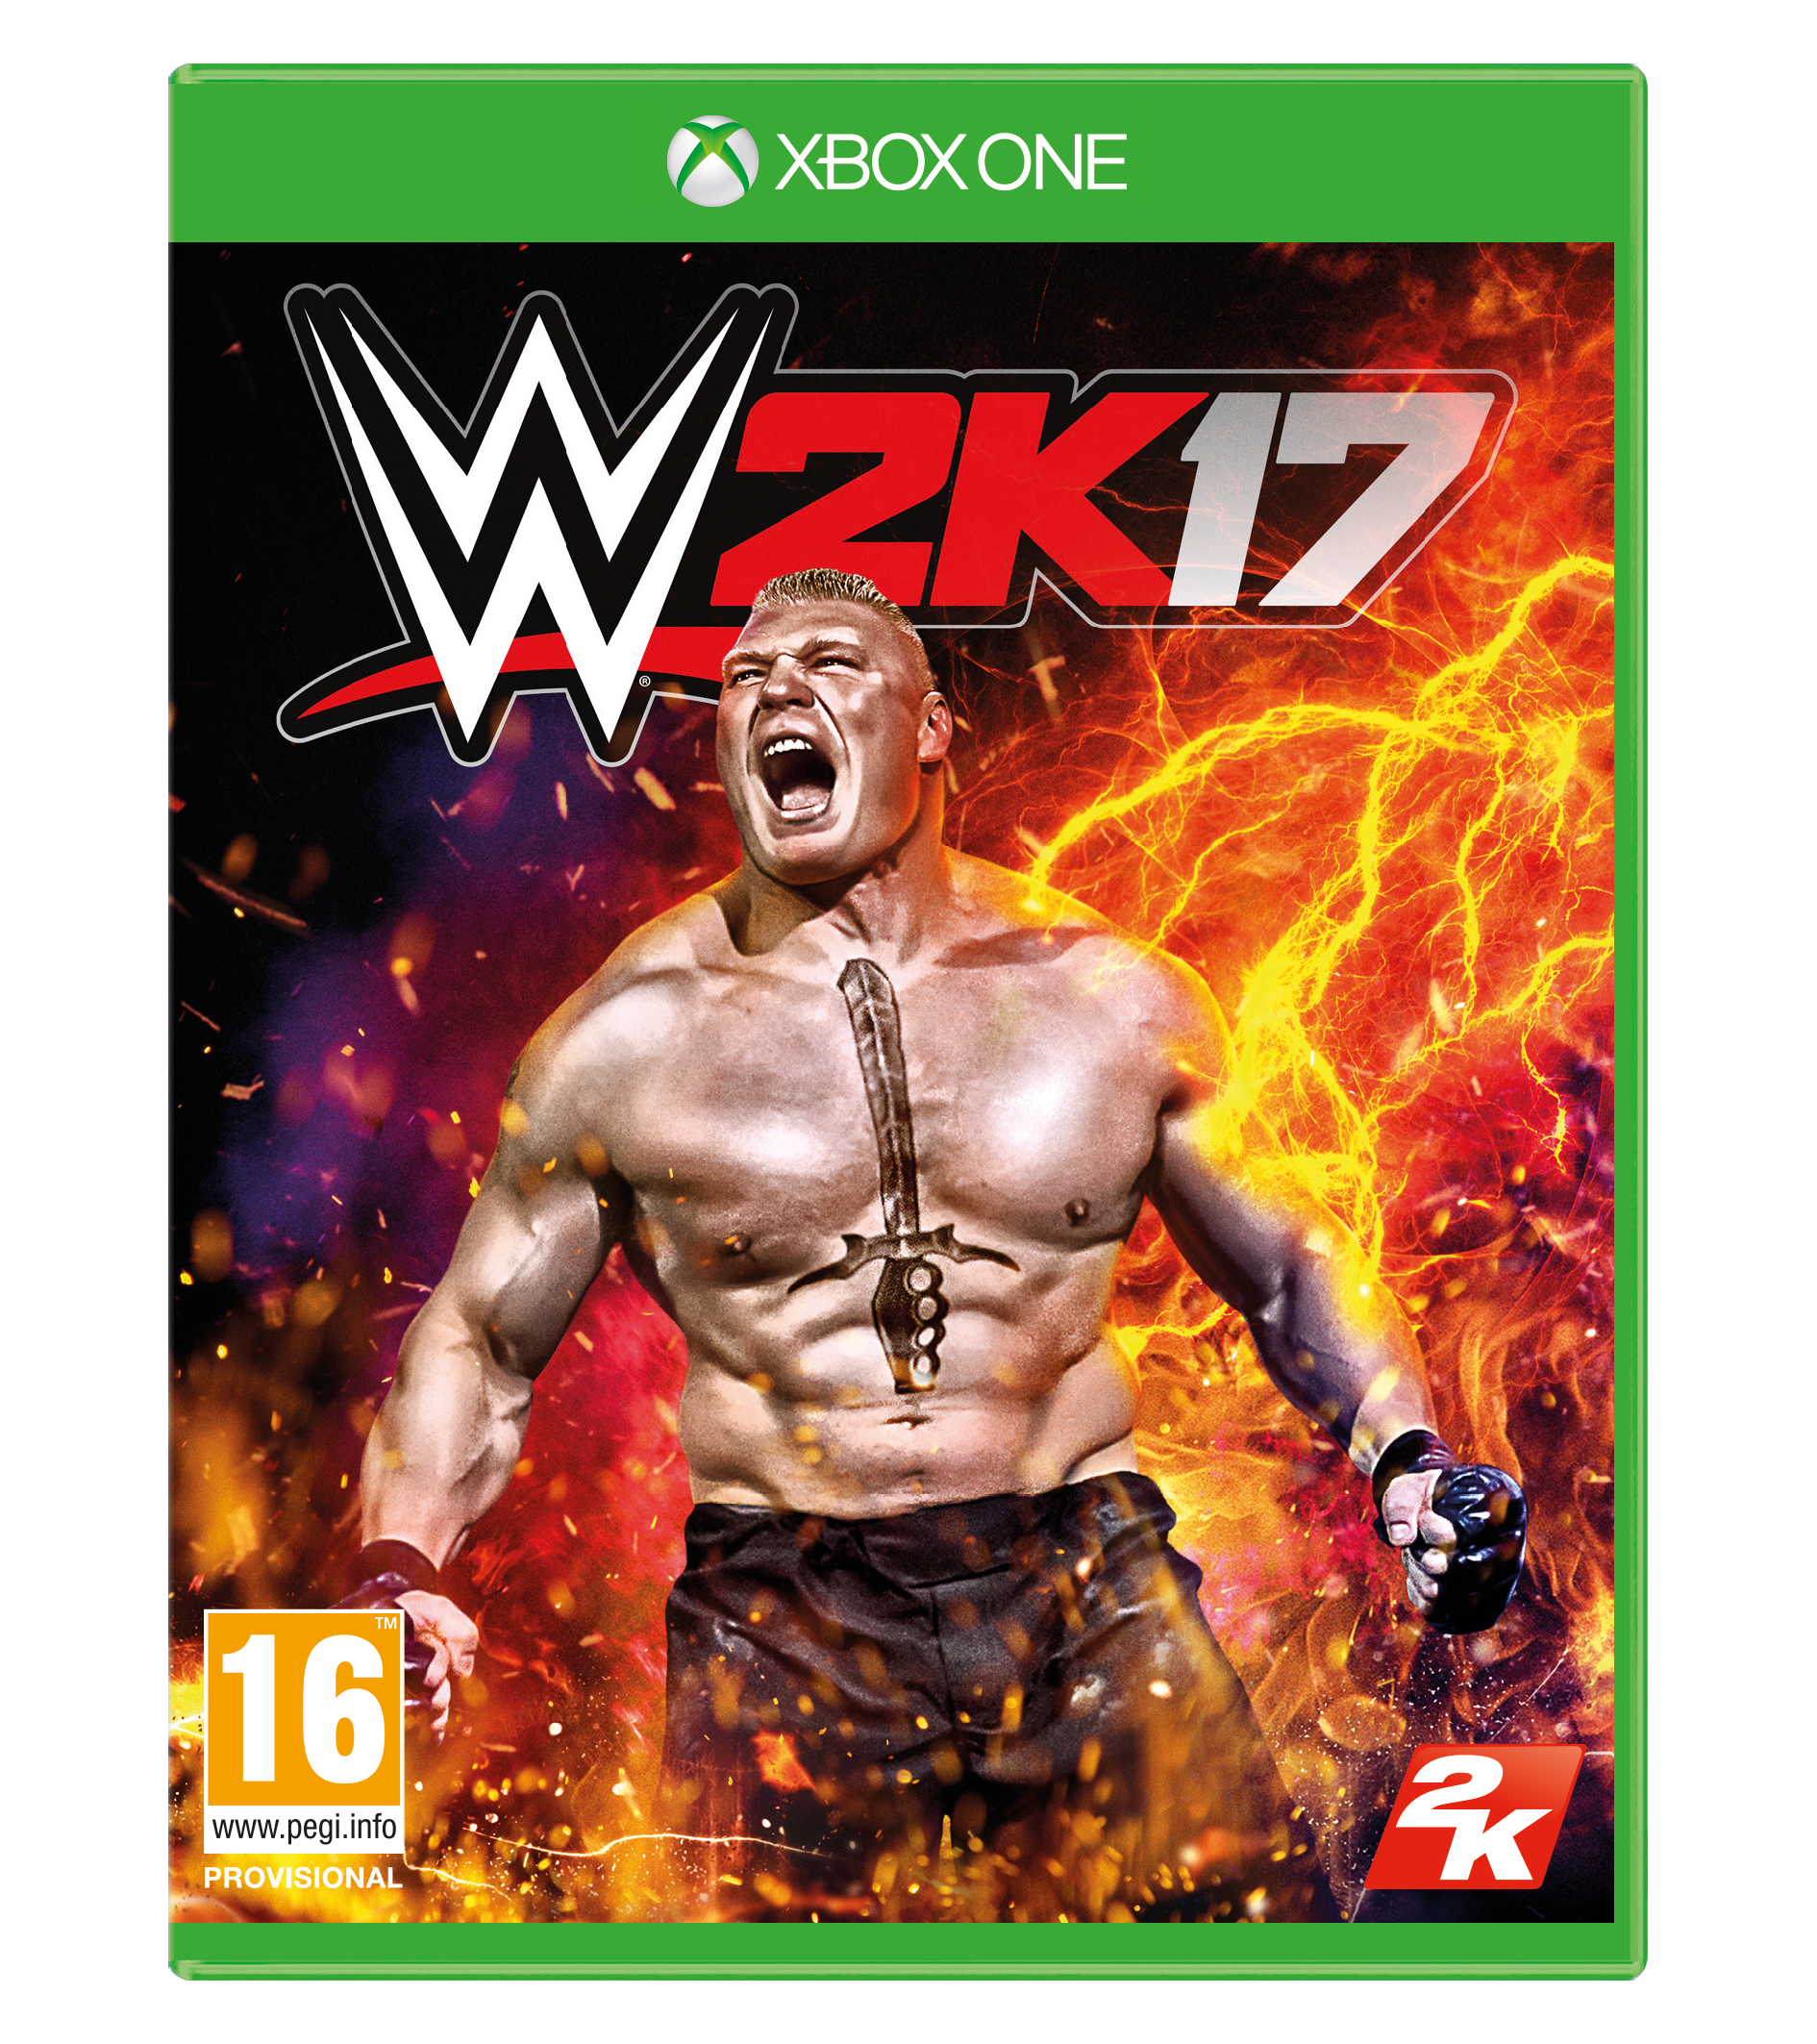 WWE 2K17 Xbox One cover featuring Brock Lesnar